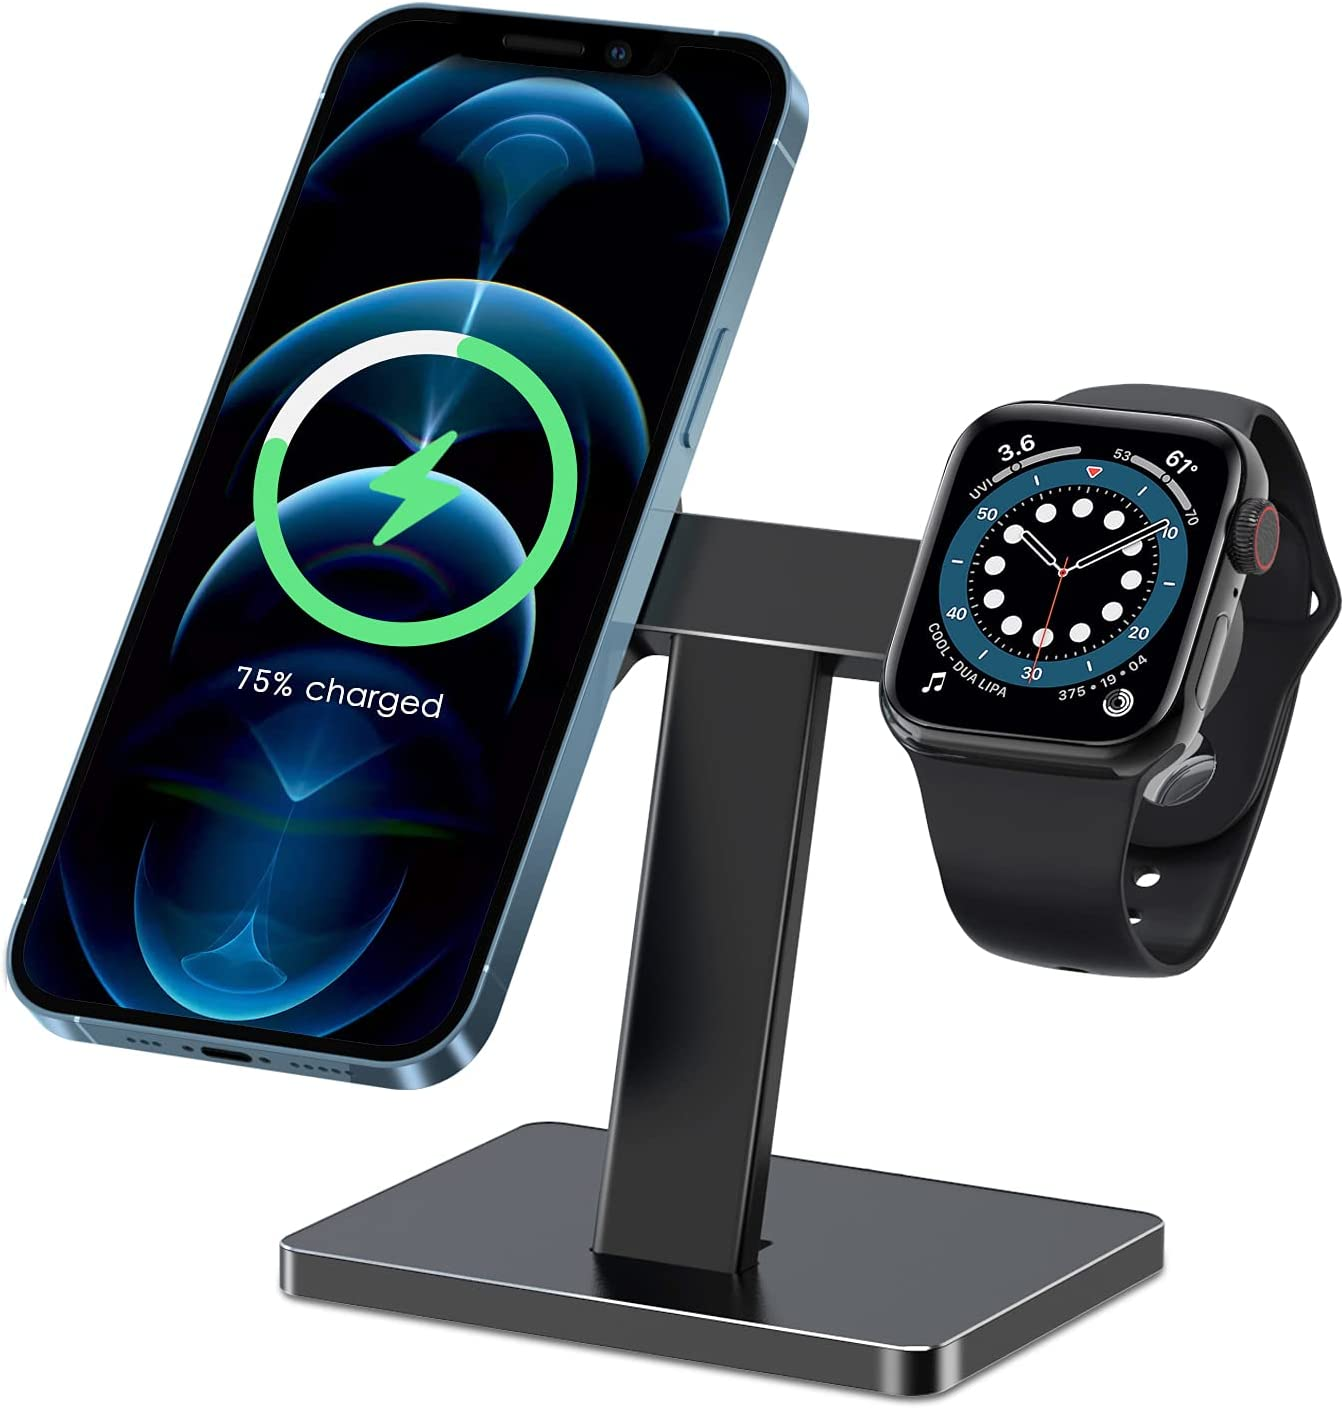 EWA 2 in 1 Wireless Charger Stand Compatible with MagSafe Charger and Apple Watch Charger, Compatible with iPhone 12 Series and Apple Watch Series - Black (Not Include The Charger)